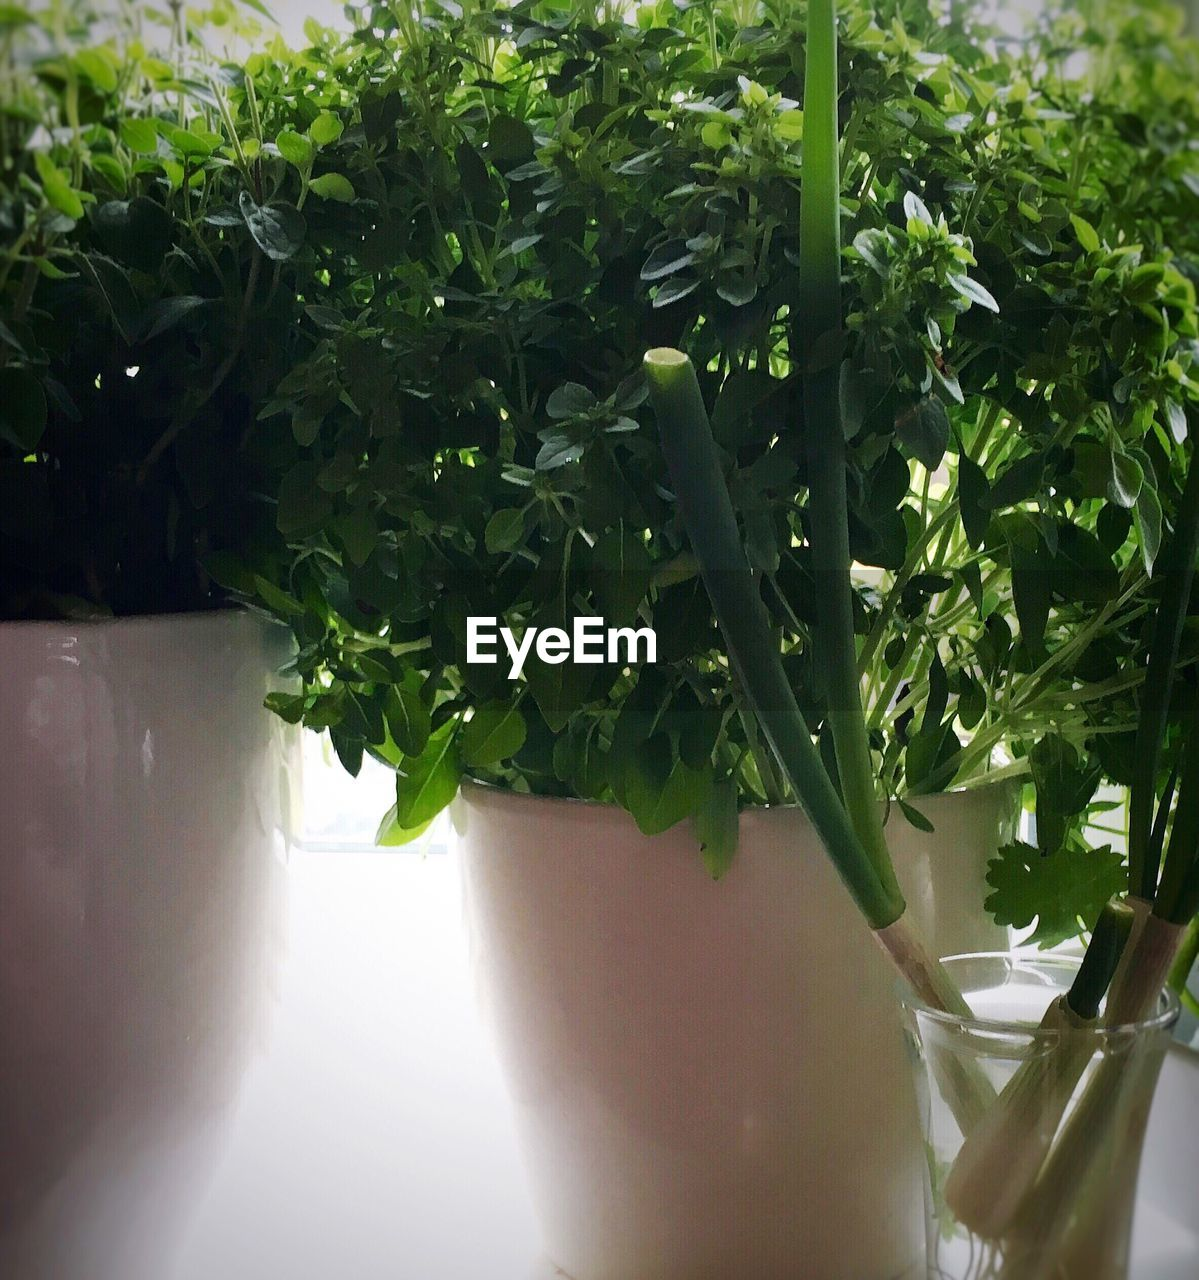 plant, green color, potted plant, food and drink, growth, food, freshness, day, no people, outdoors, close-up, healthy eating, nature